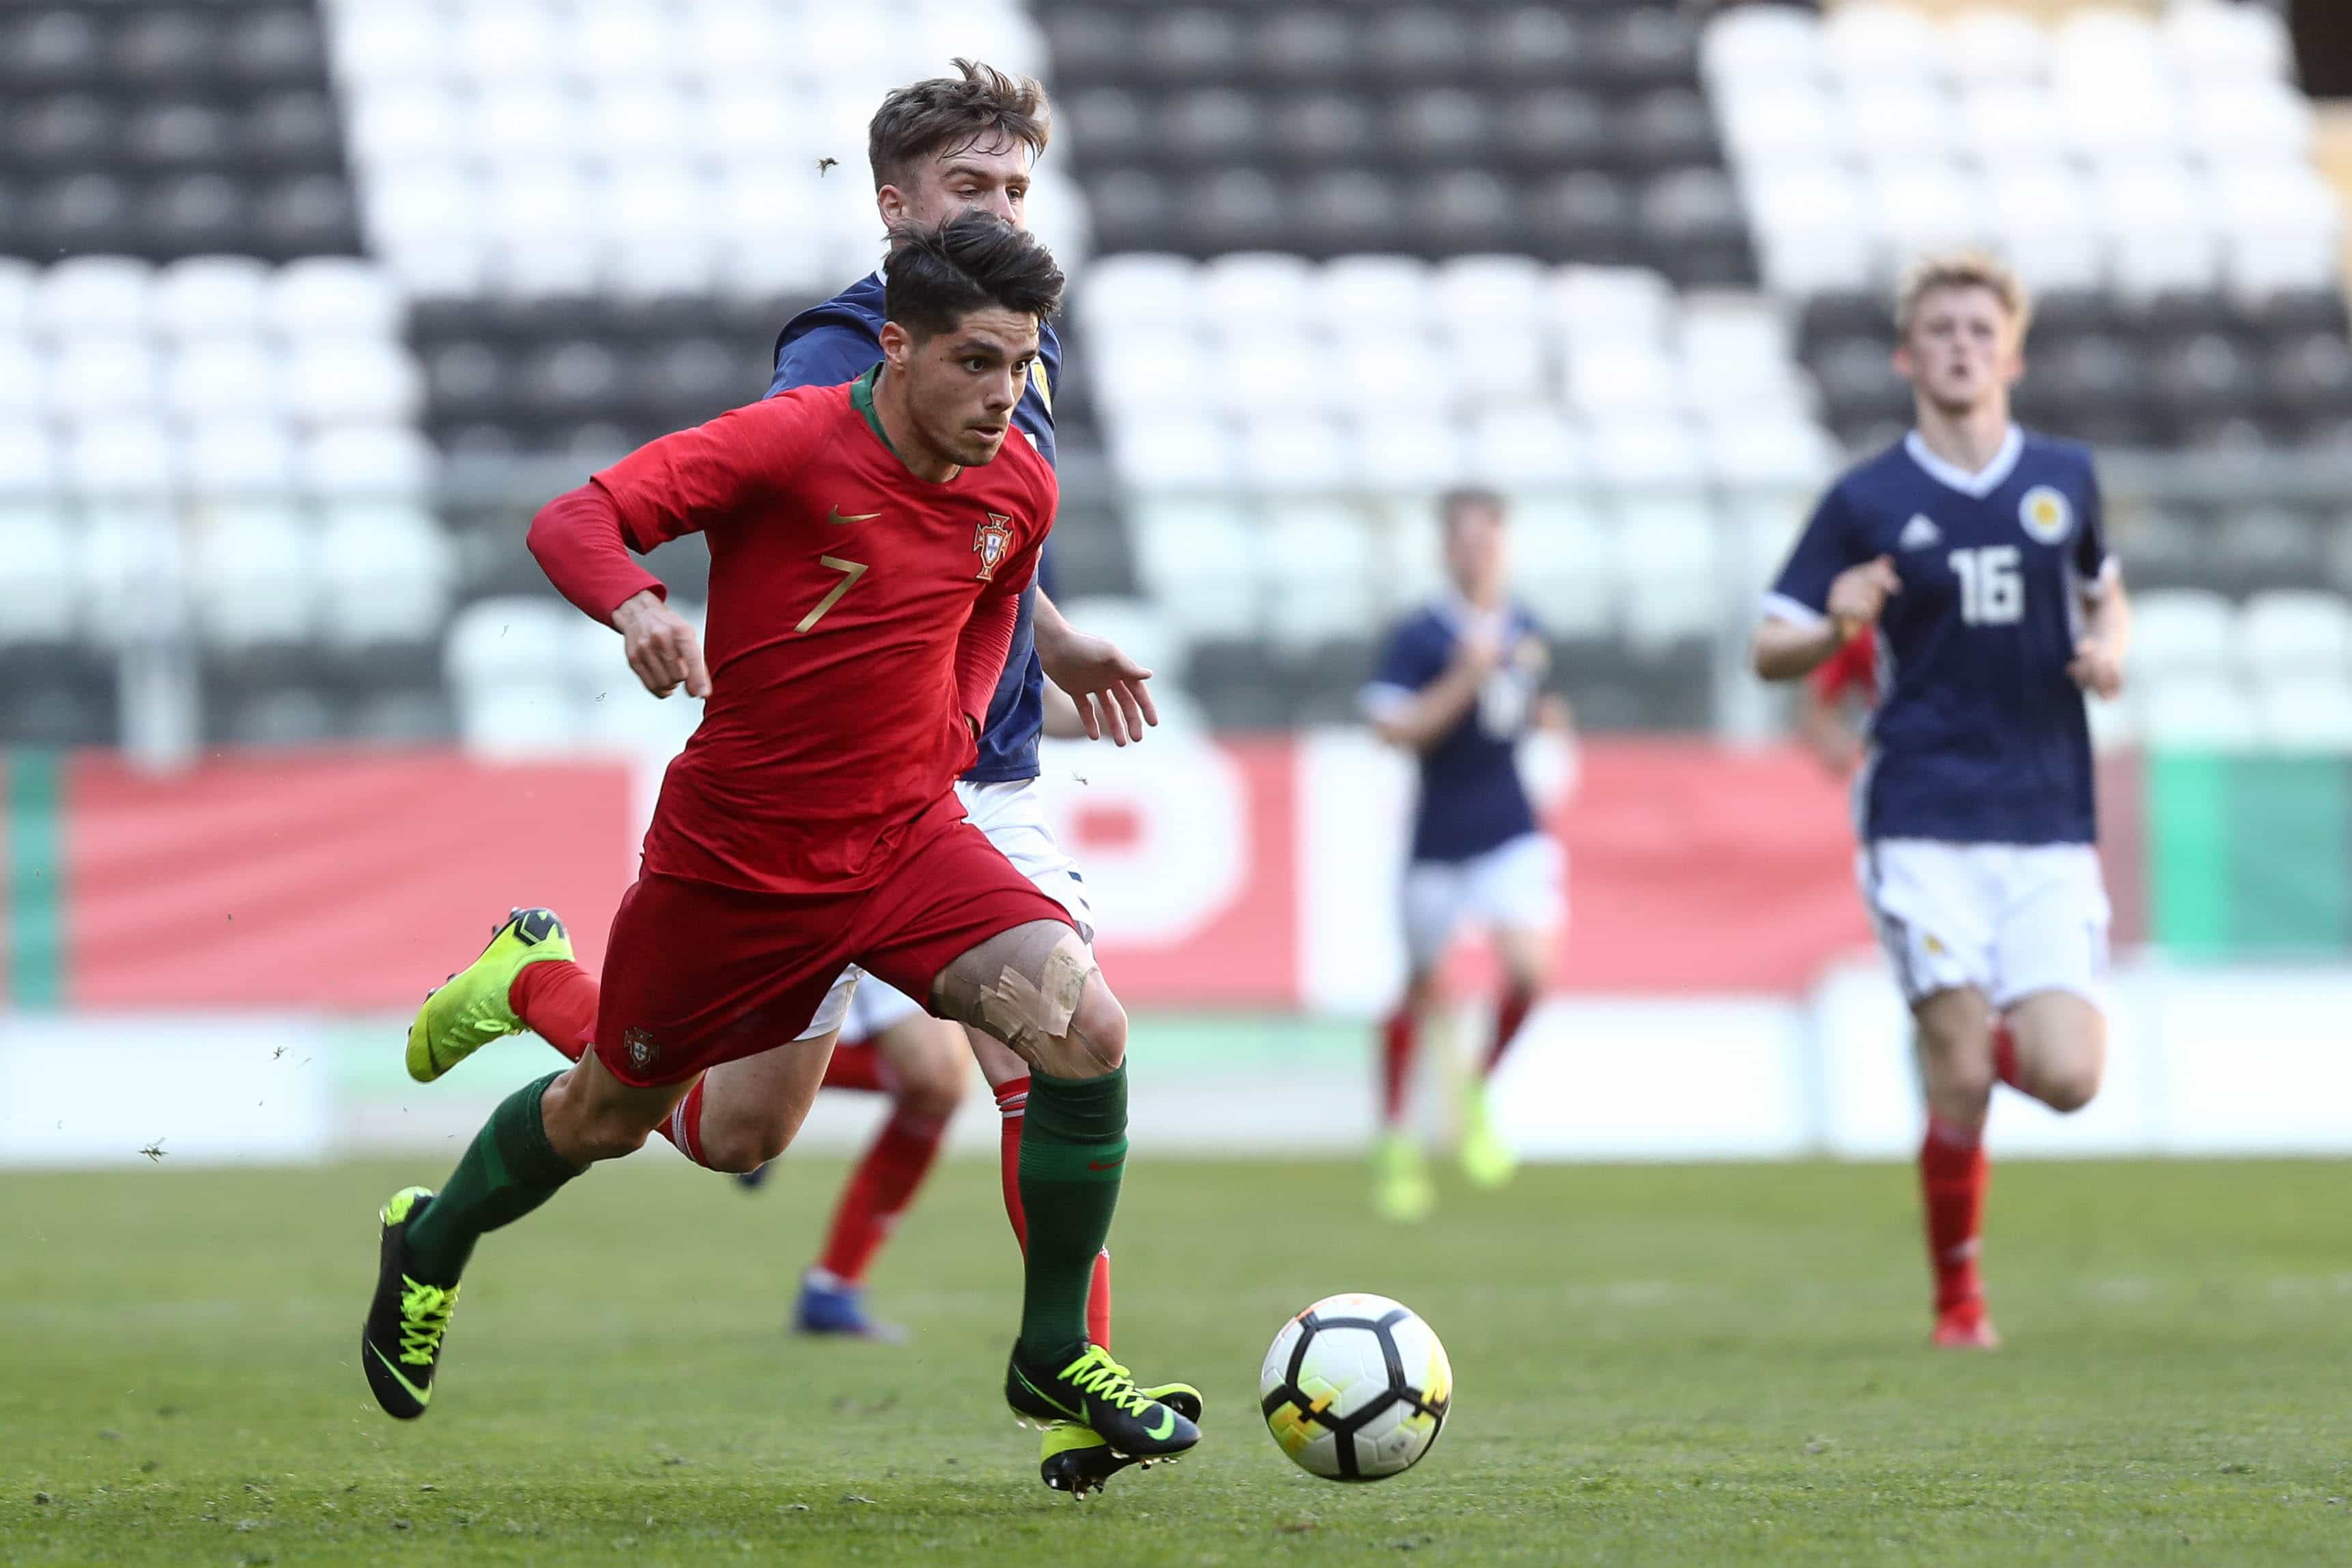 Estamos lá! Portugal na fase final do Europeu de sub-19